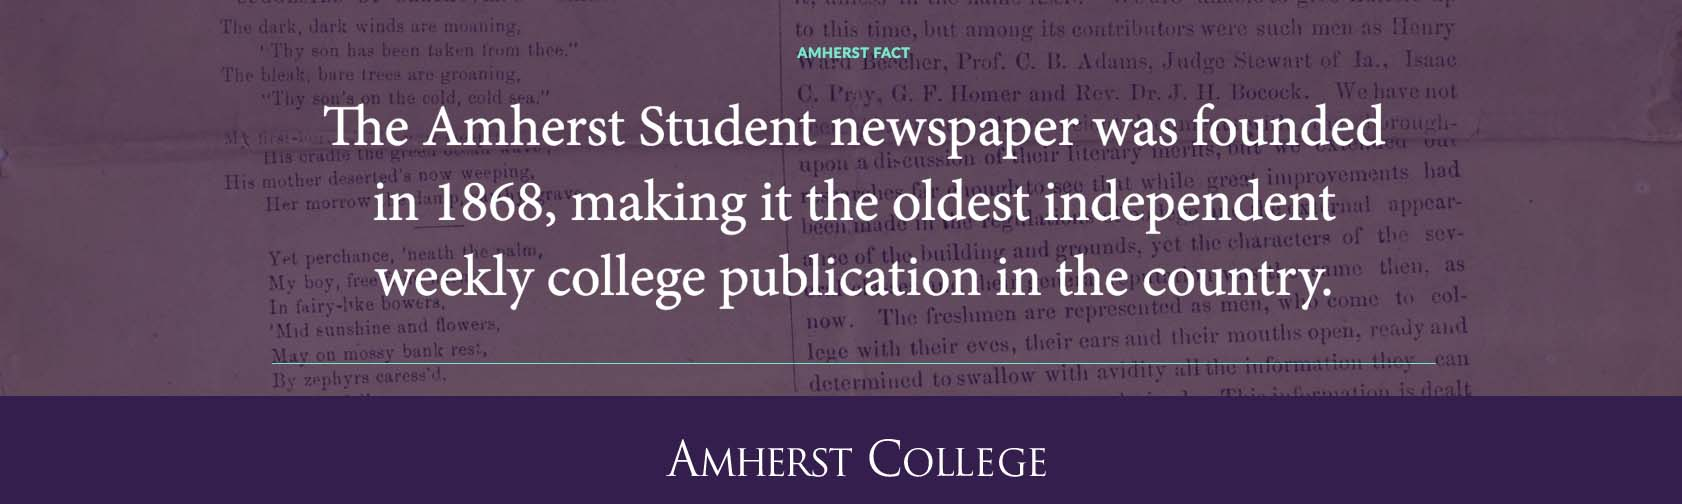 The Amherst Student Fact